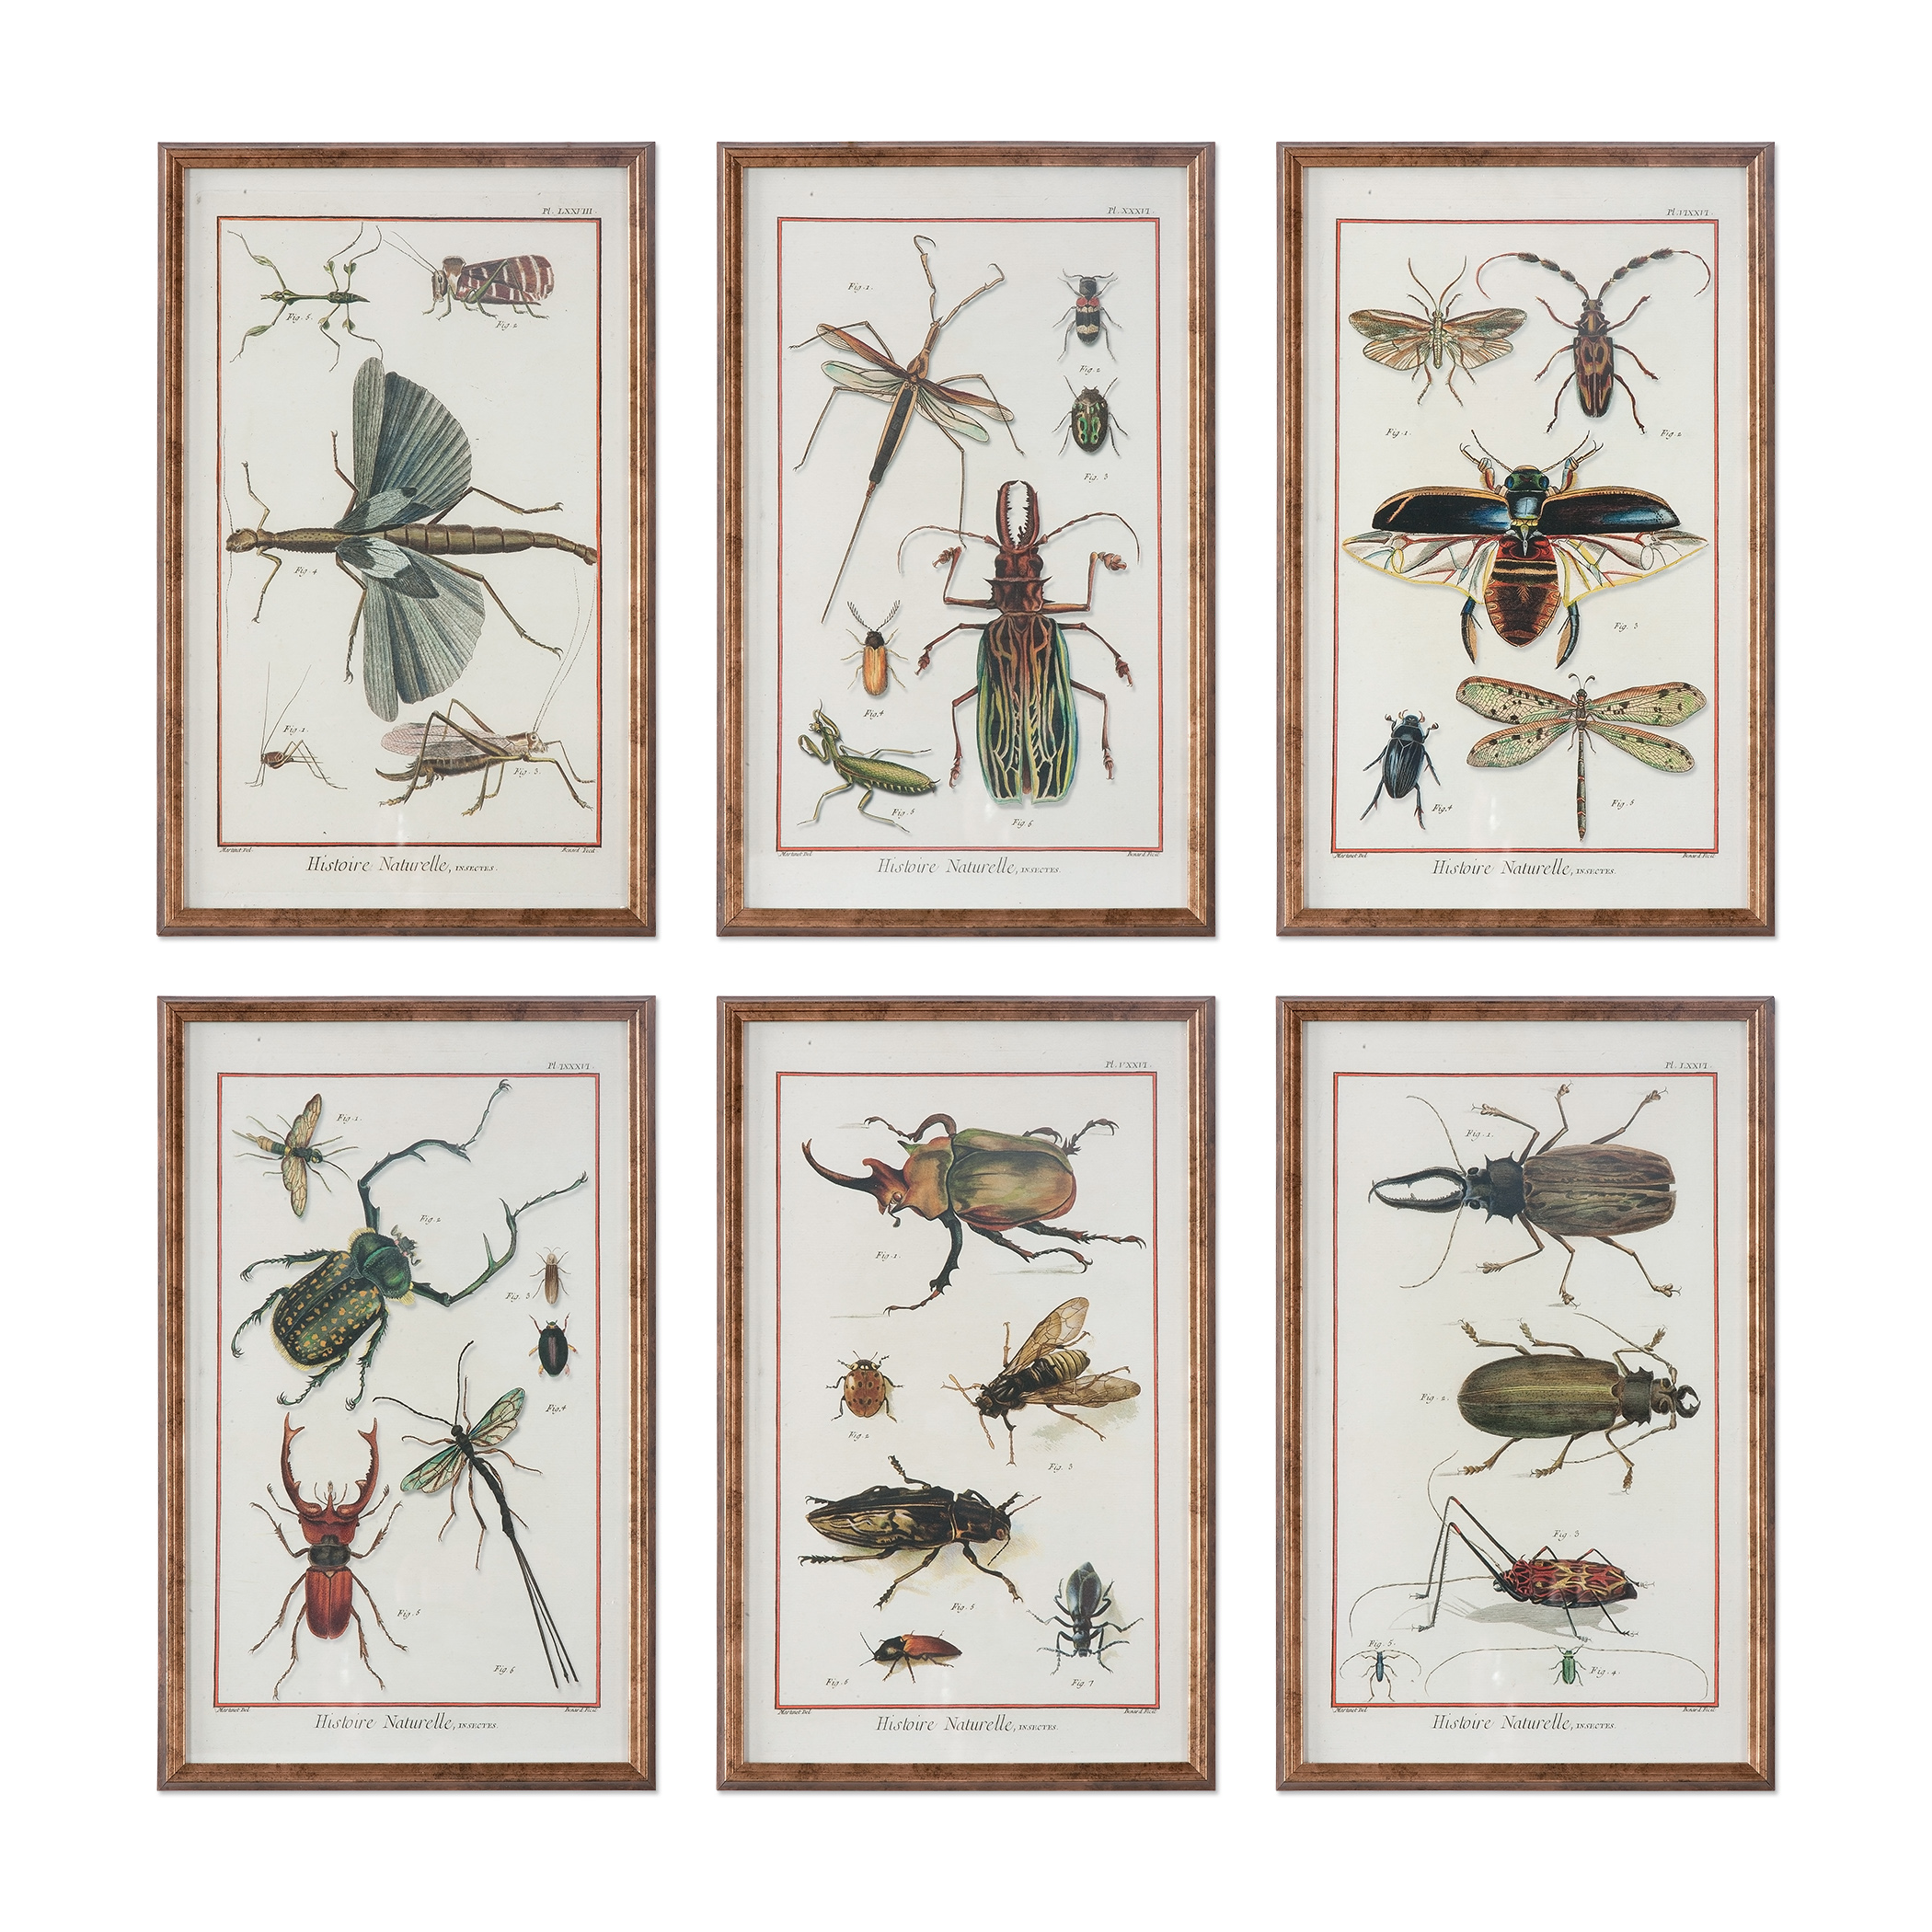 Uttermost Art Multi Insect Prints, S/6 - Item Number: 33628